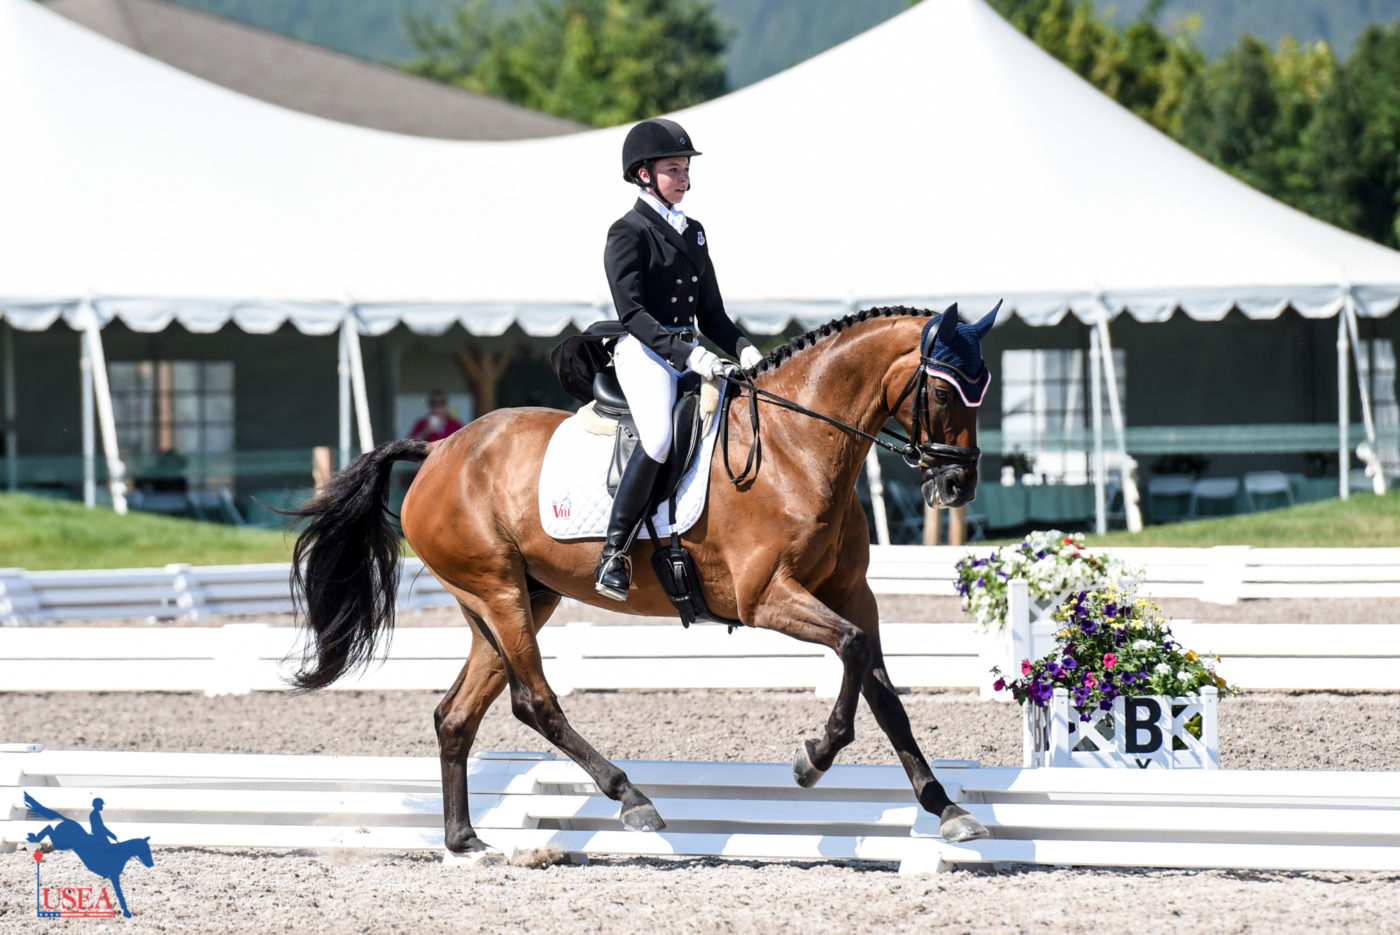 11th - Alexandra Baugh and Mr. Candyman - 36.8